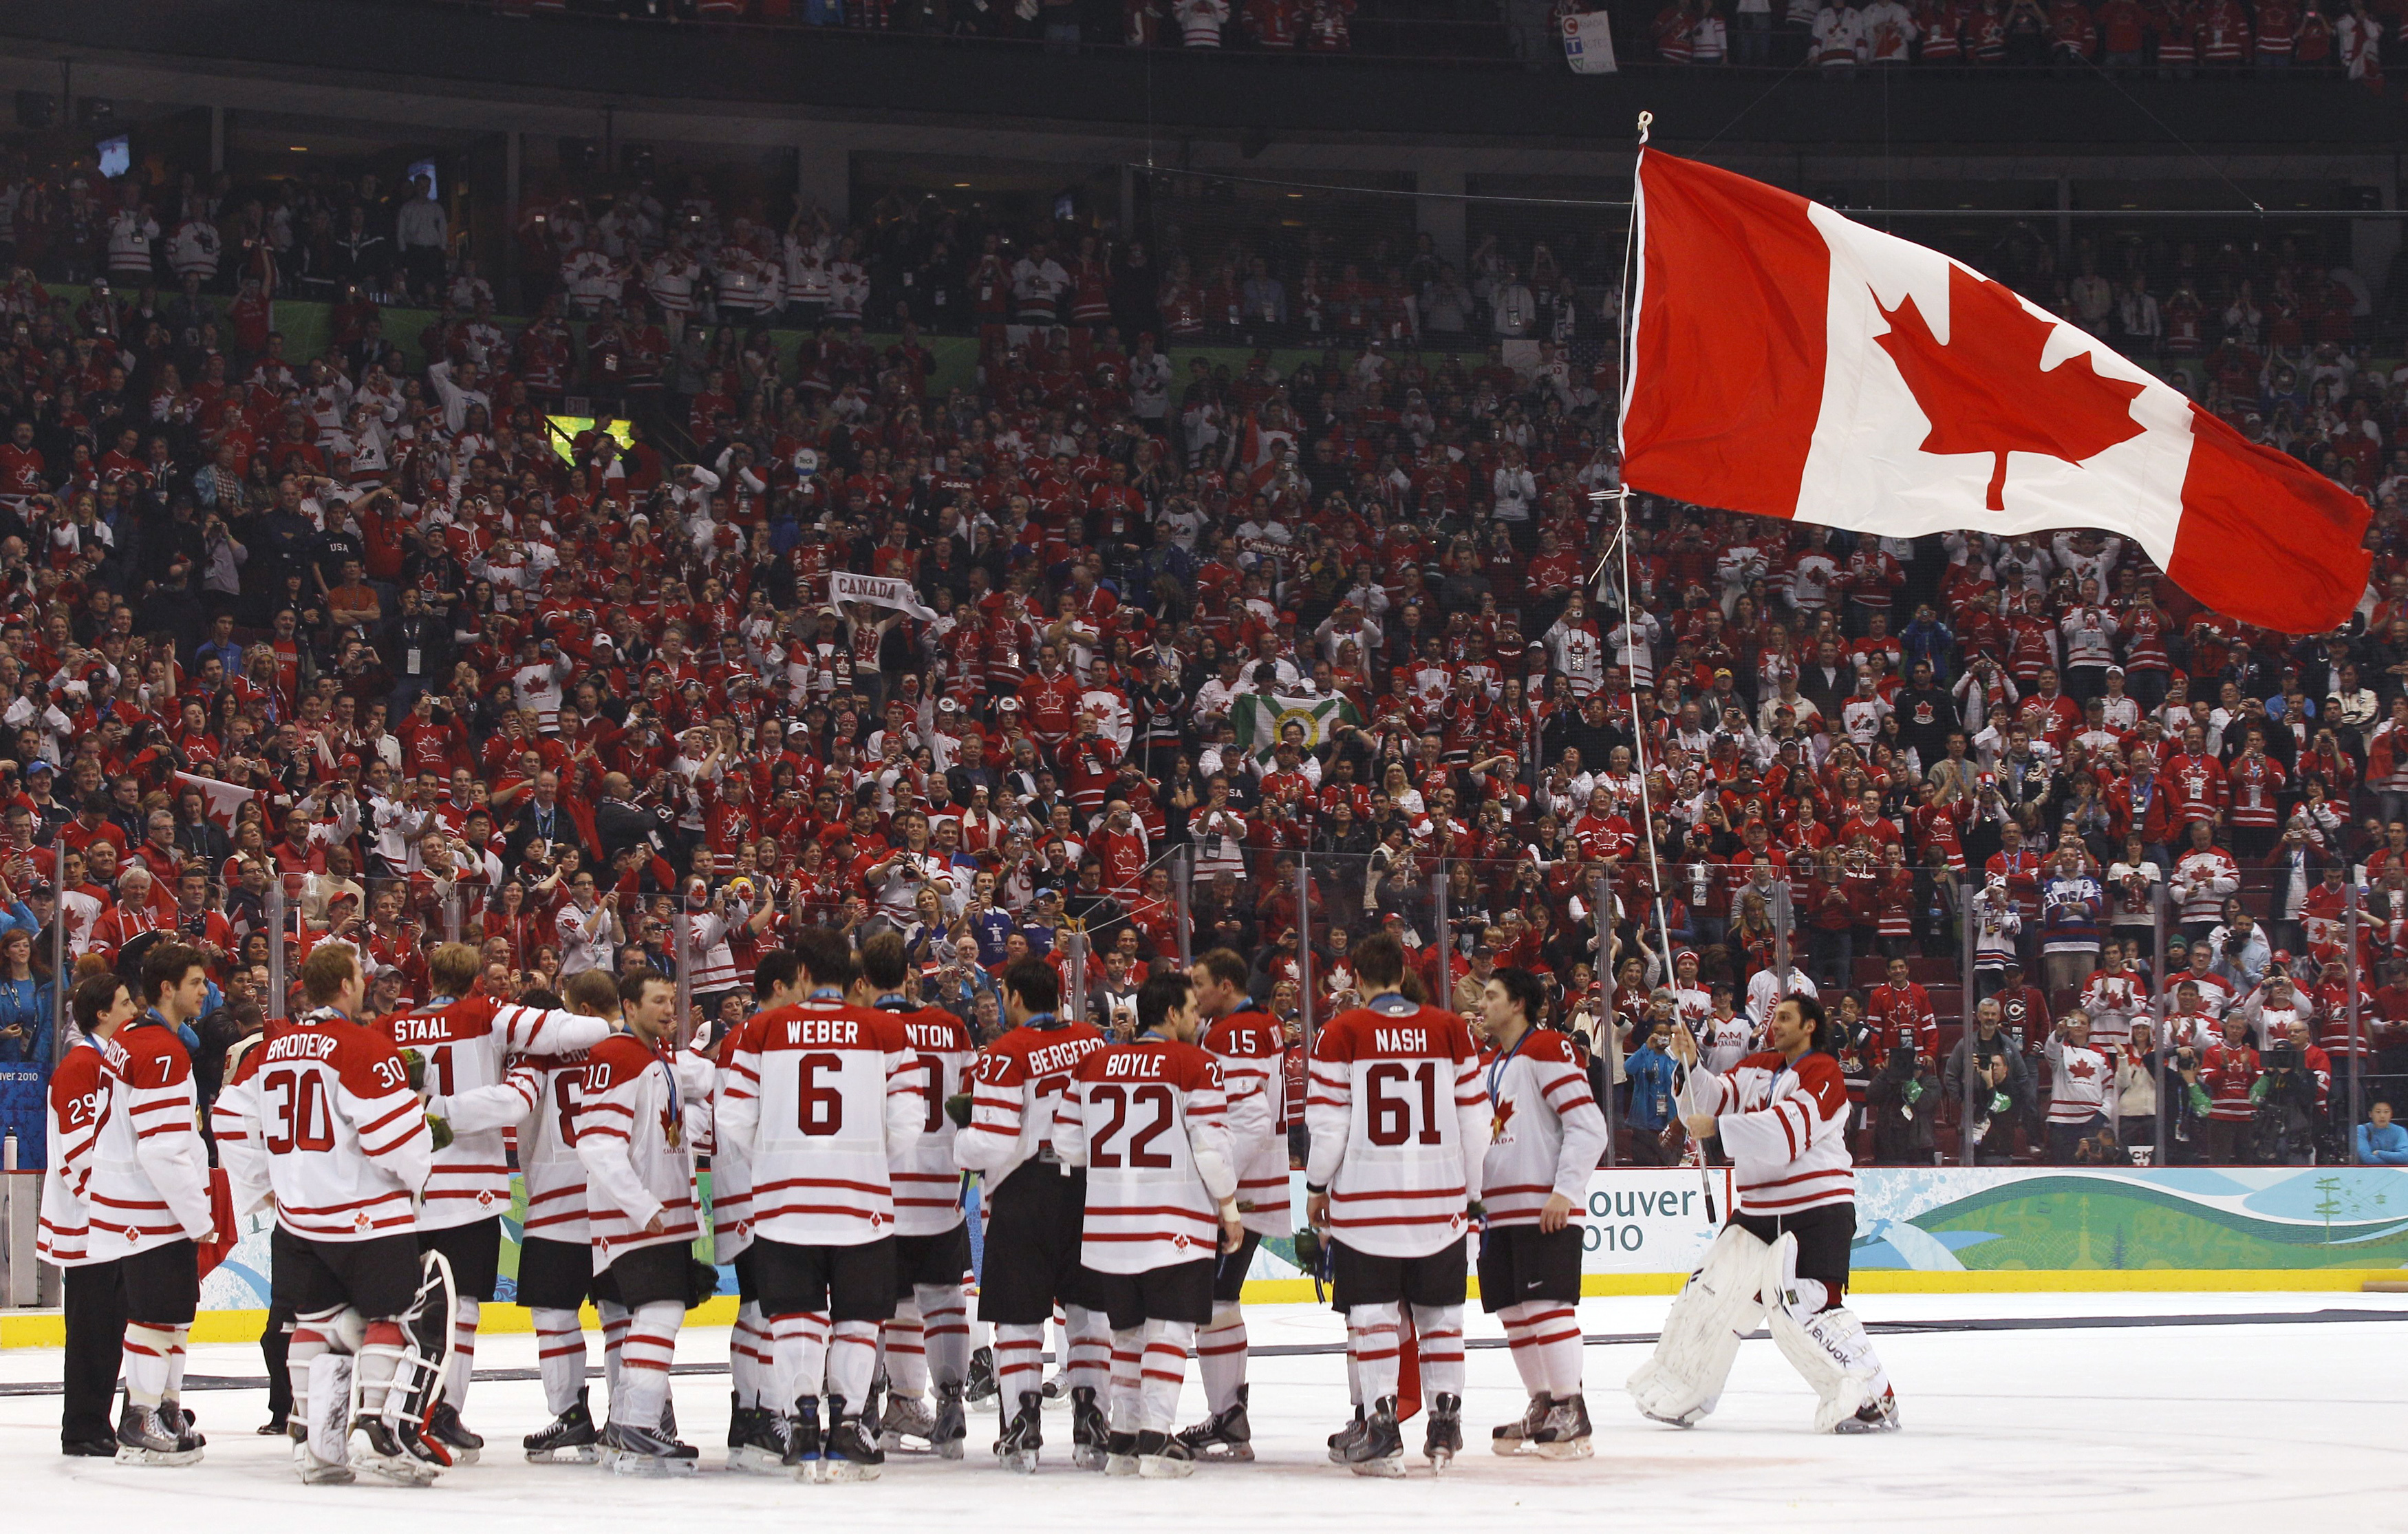 Team Canada goalie Roberto Luongo, right, skates with the Canadian flag after defeating the U.S. in the gold medal hockey game at the Vancouver 2010 Winter Olympics, Feb. 28, 2010. (Hans Deryk/Reuters)